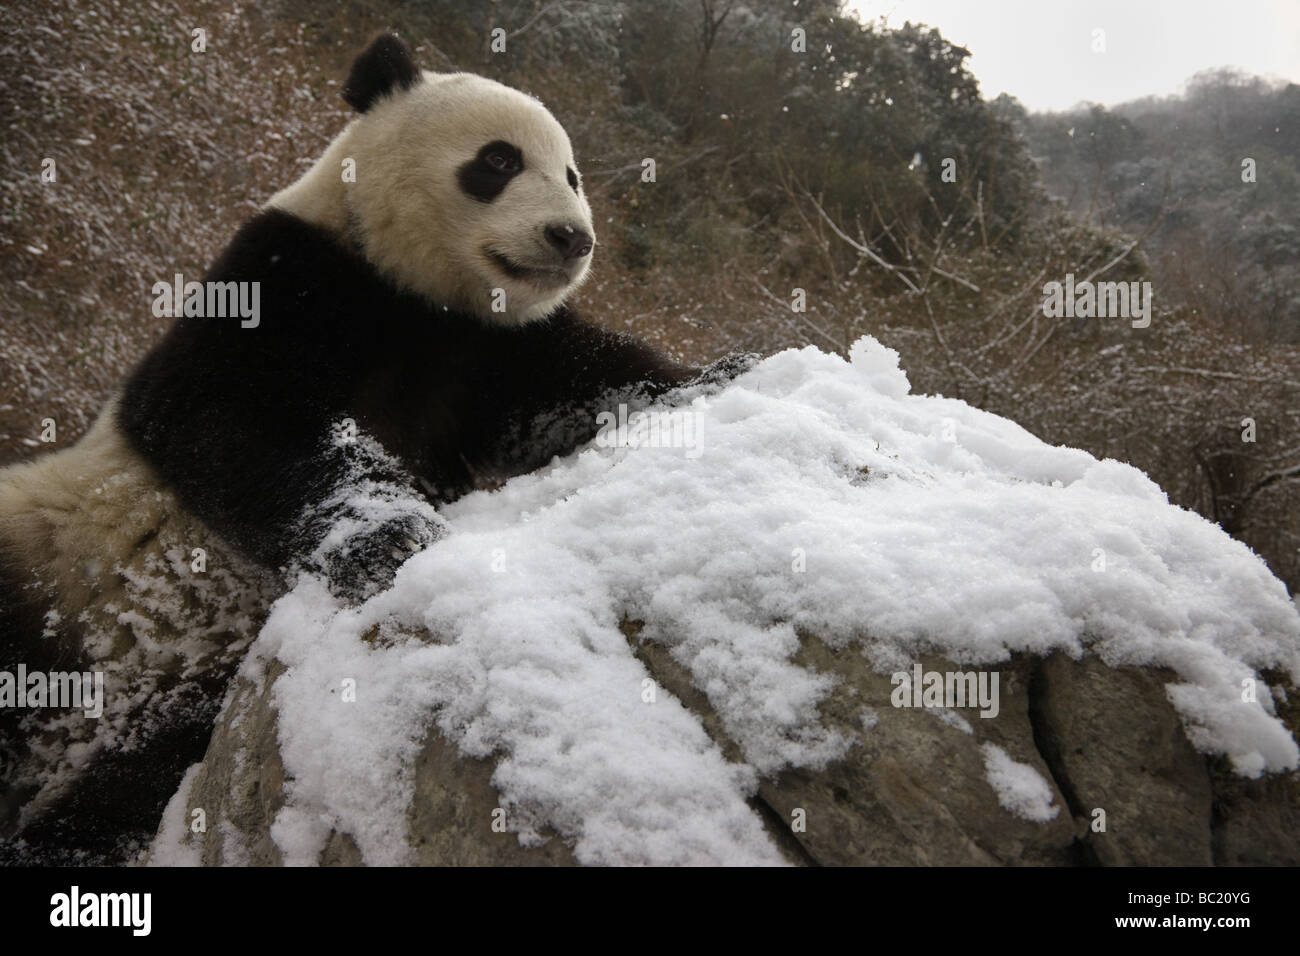 Giant panda on snow Wolong Sichuan China Stock Photo